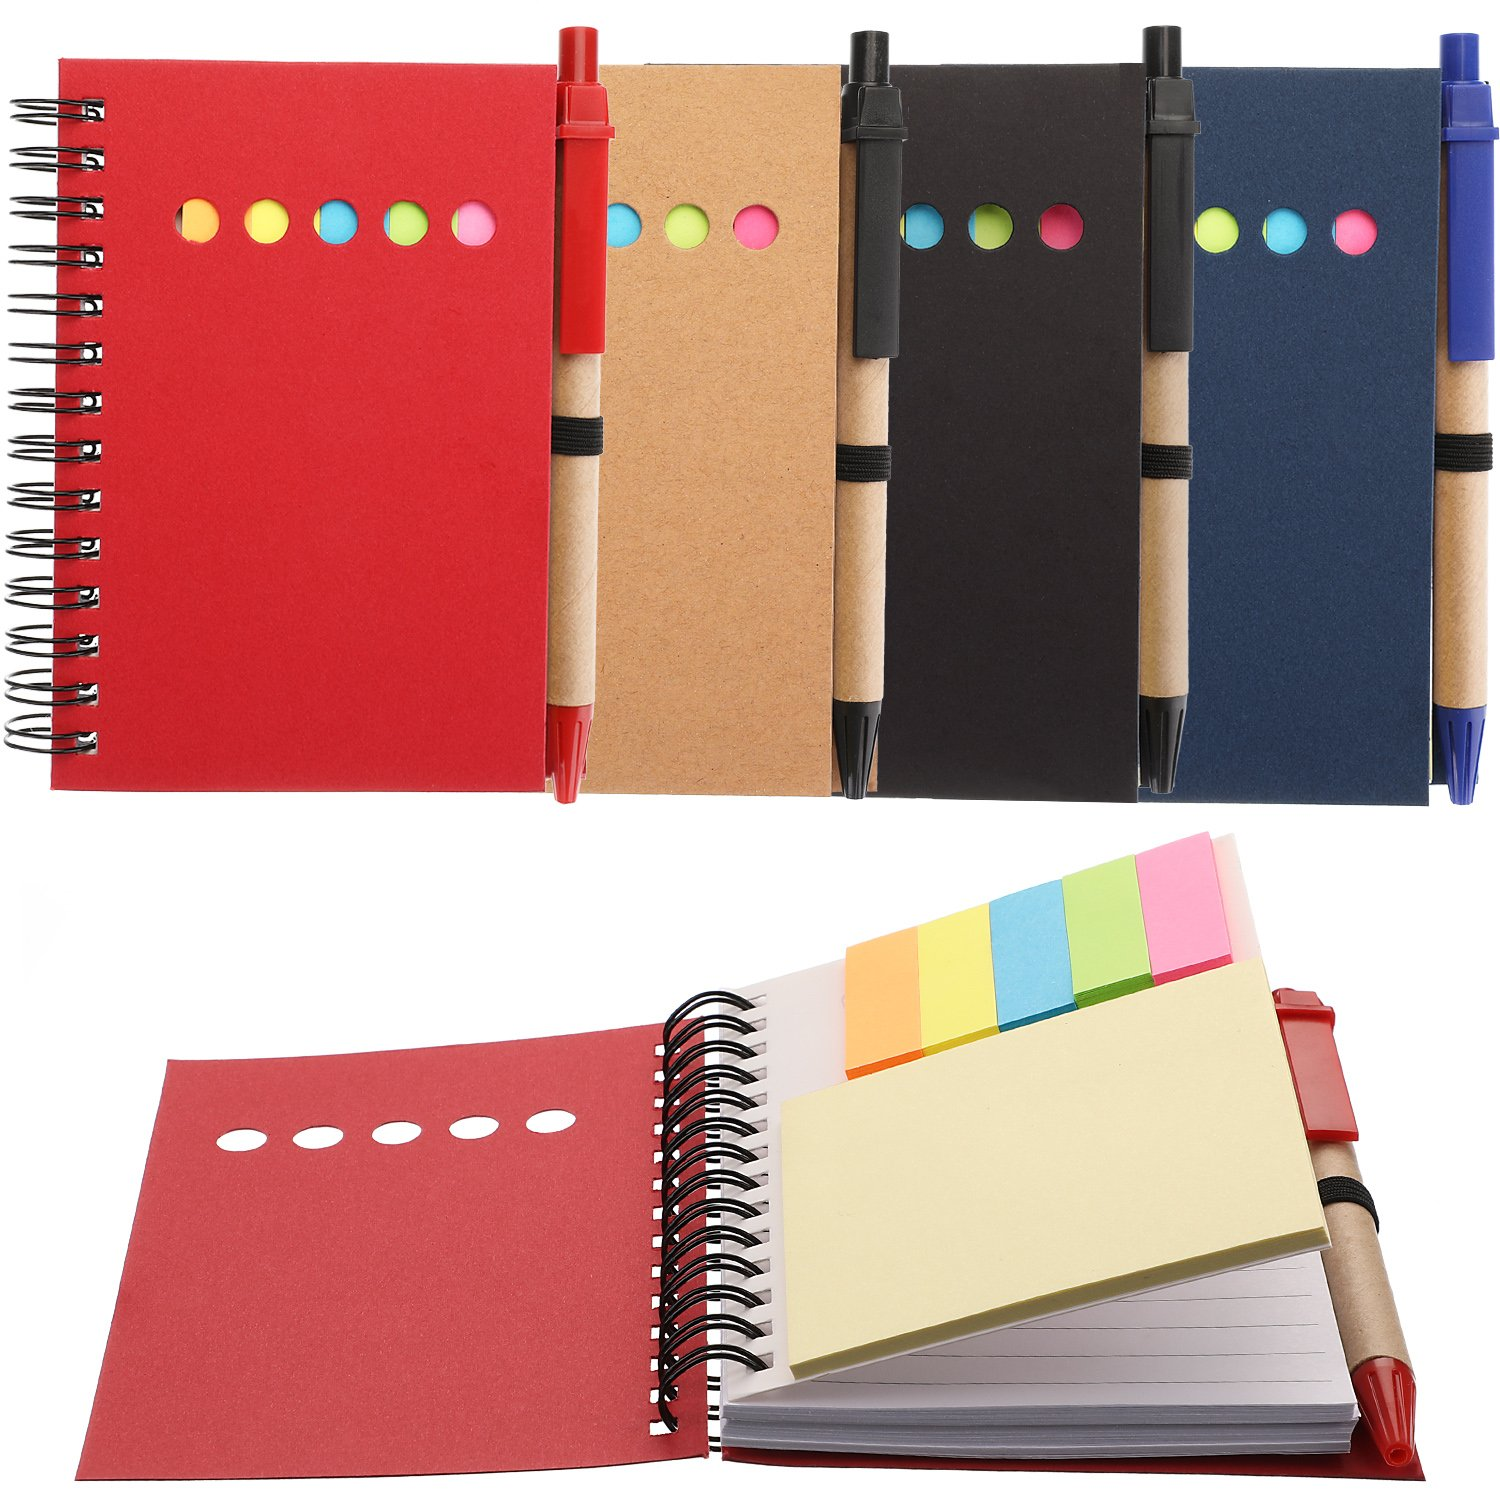 Maxdot 4 Pieces Kraft Paper Steno Pocket Business Notebook Spiral Lined Notepad Set with Pen in Holder, Sticky Colored Notes Page Marker Tabs (4 Colors Cover) by Maxdot